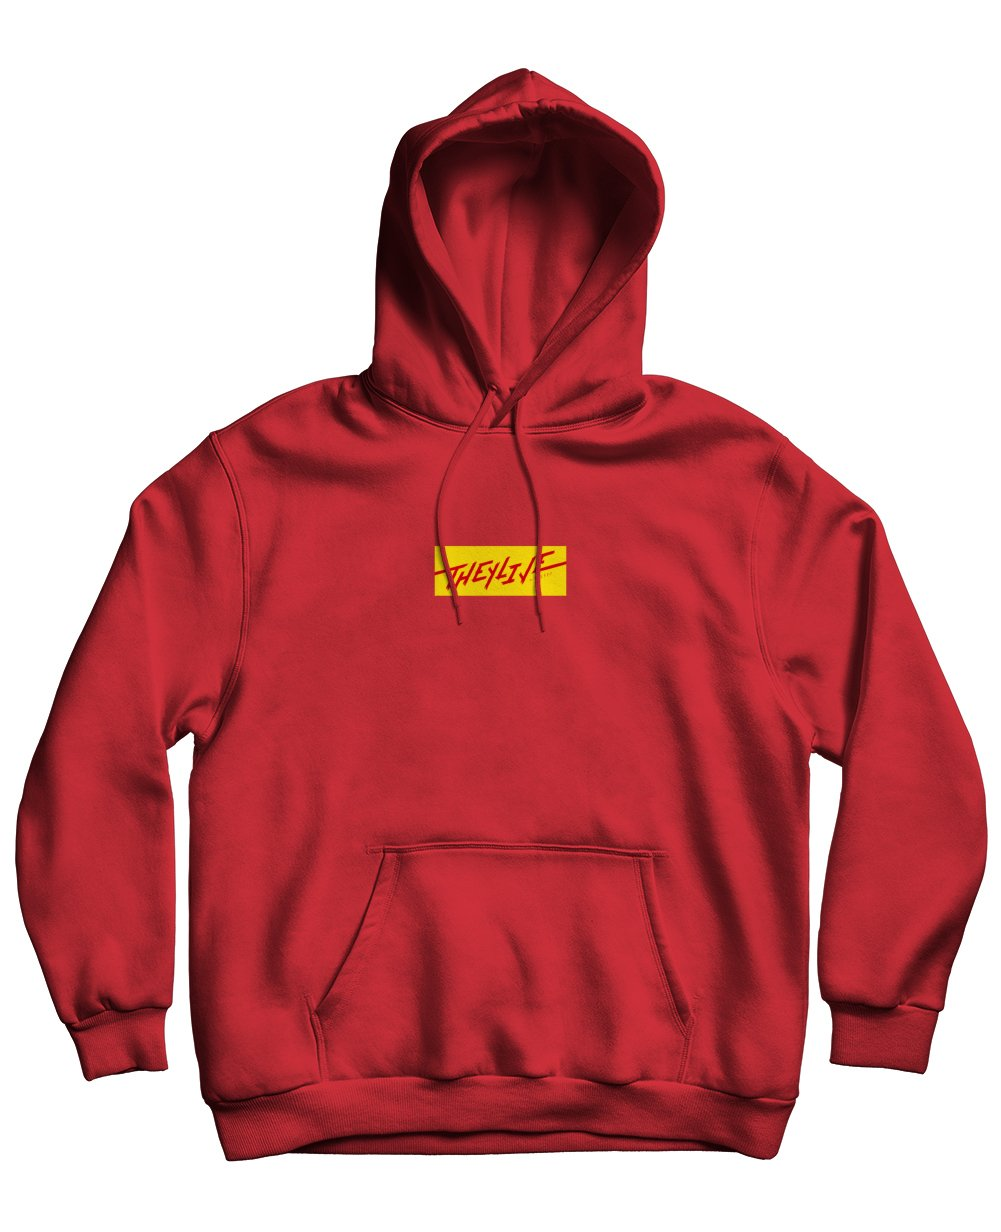 The Shining Print Hoodies in Red